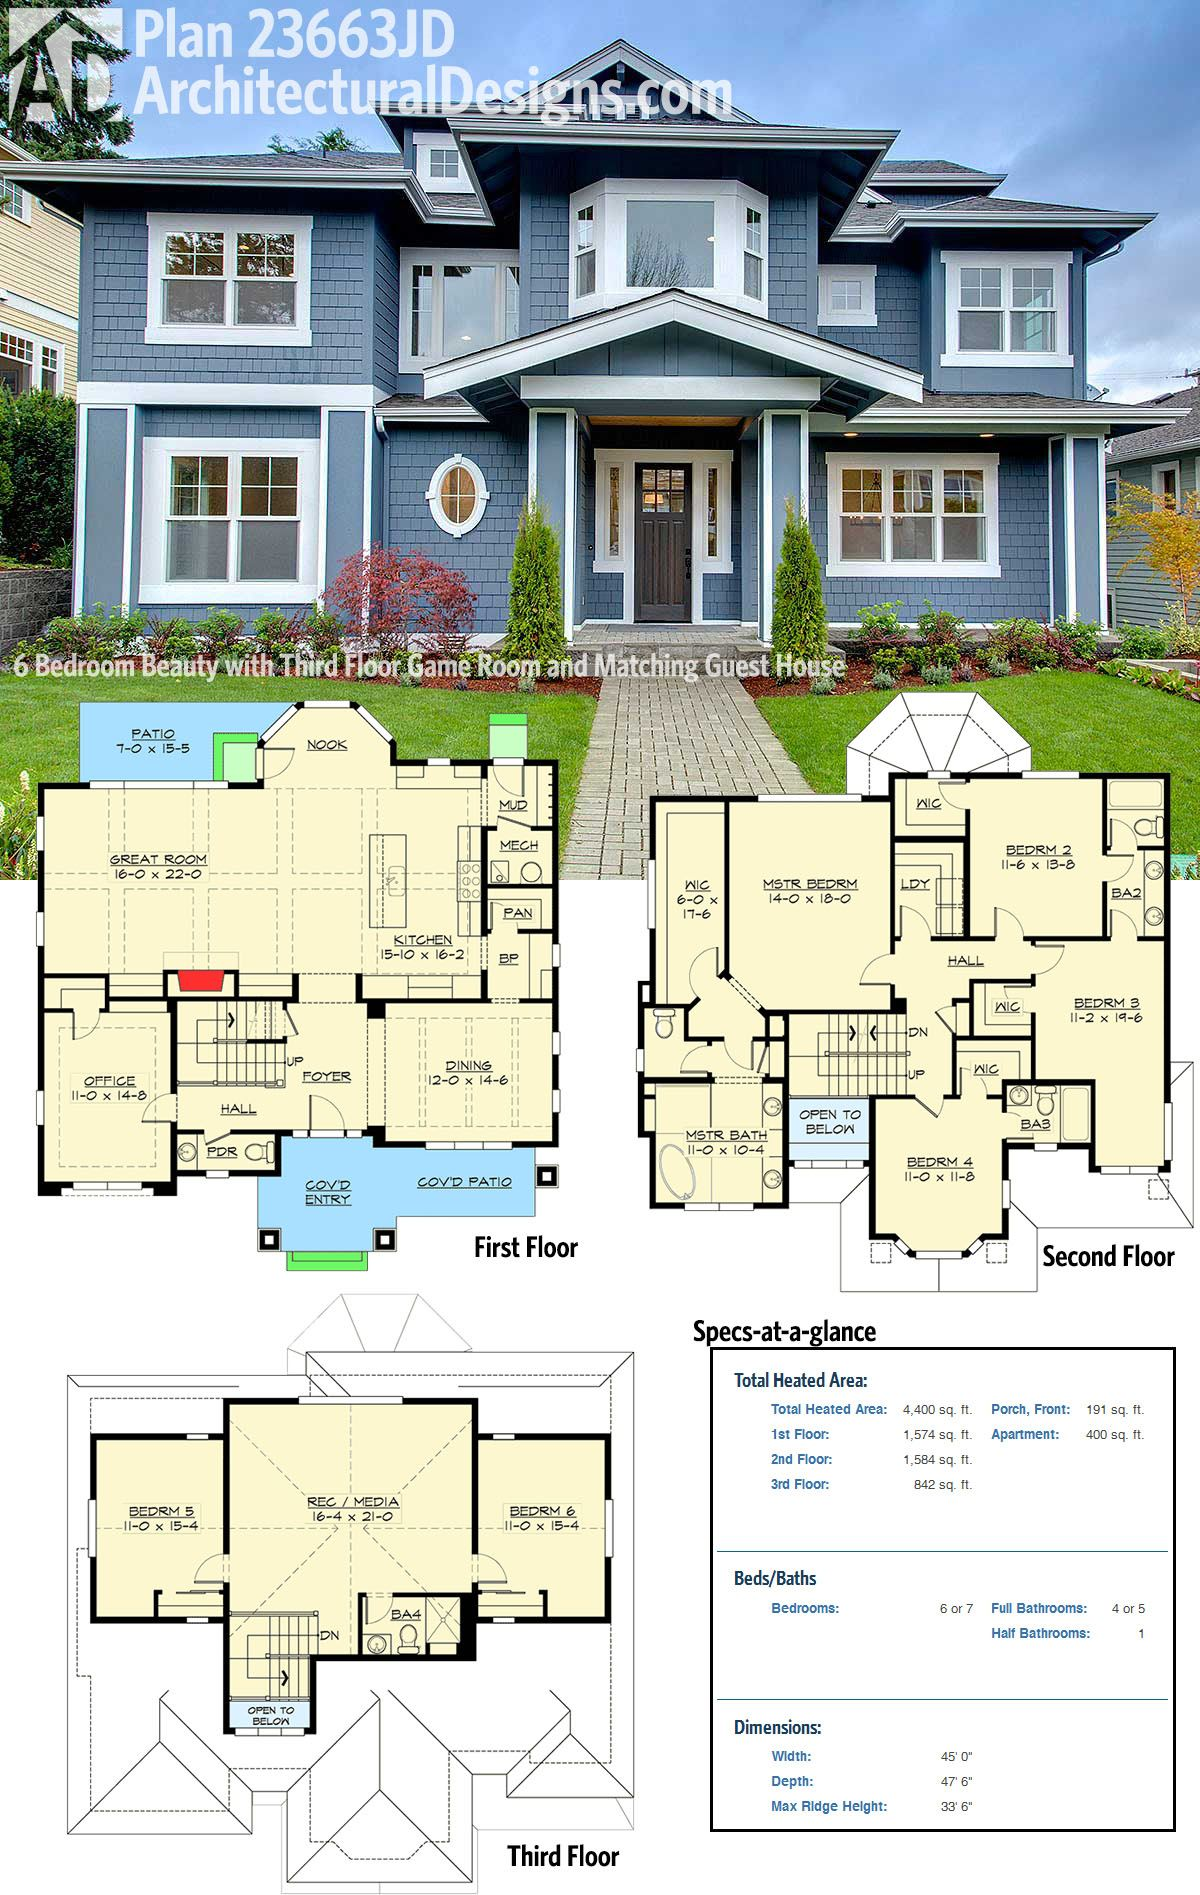 Architectural designs house plan 23663jd not only gives for Seaside house plans designs